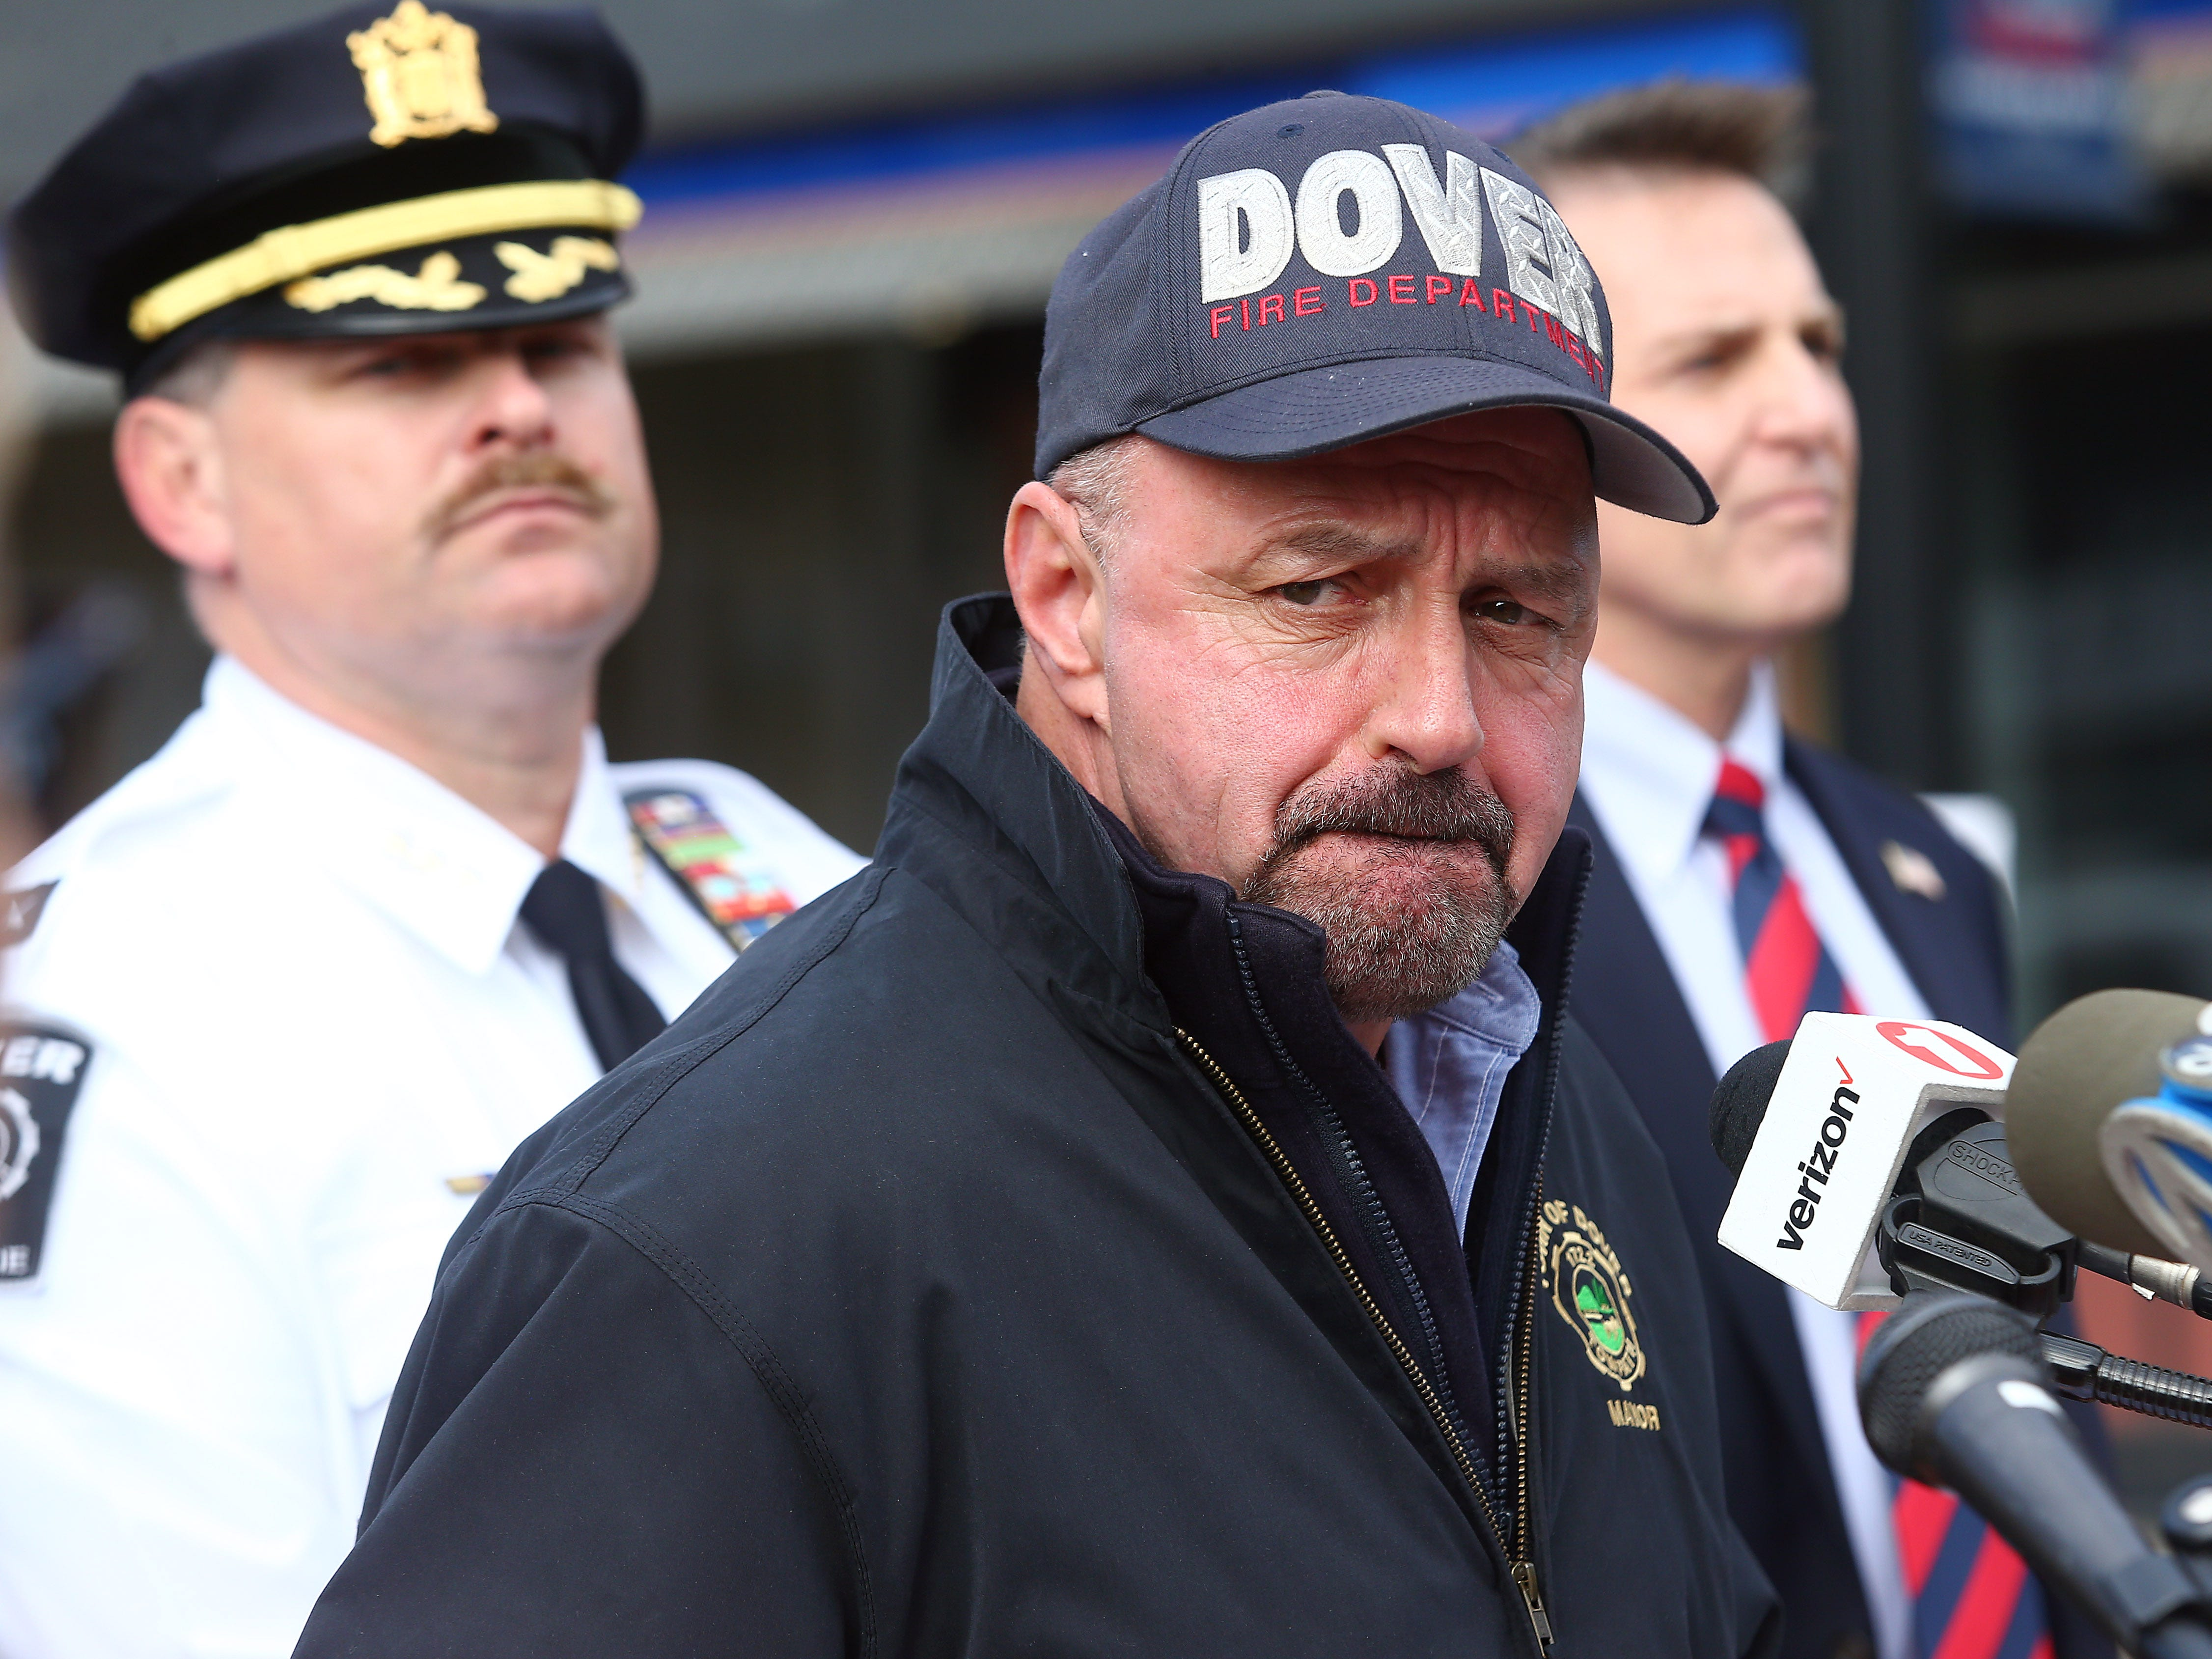 James Dodd, Mayor of Dover speaks to the media the morning after a devastating fire on North Warren Street in Dover that collapsed multiple businesses in a fast-moving, seven-alarm blaze that officials say started in the basement of Barry's restaurant. The fire then spread throughout the building and to others nearby that contained businesses and apartments Displacing about 100 people from their homes. October 23, 2018, Dover, NJ